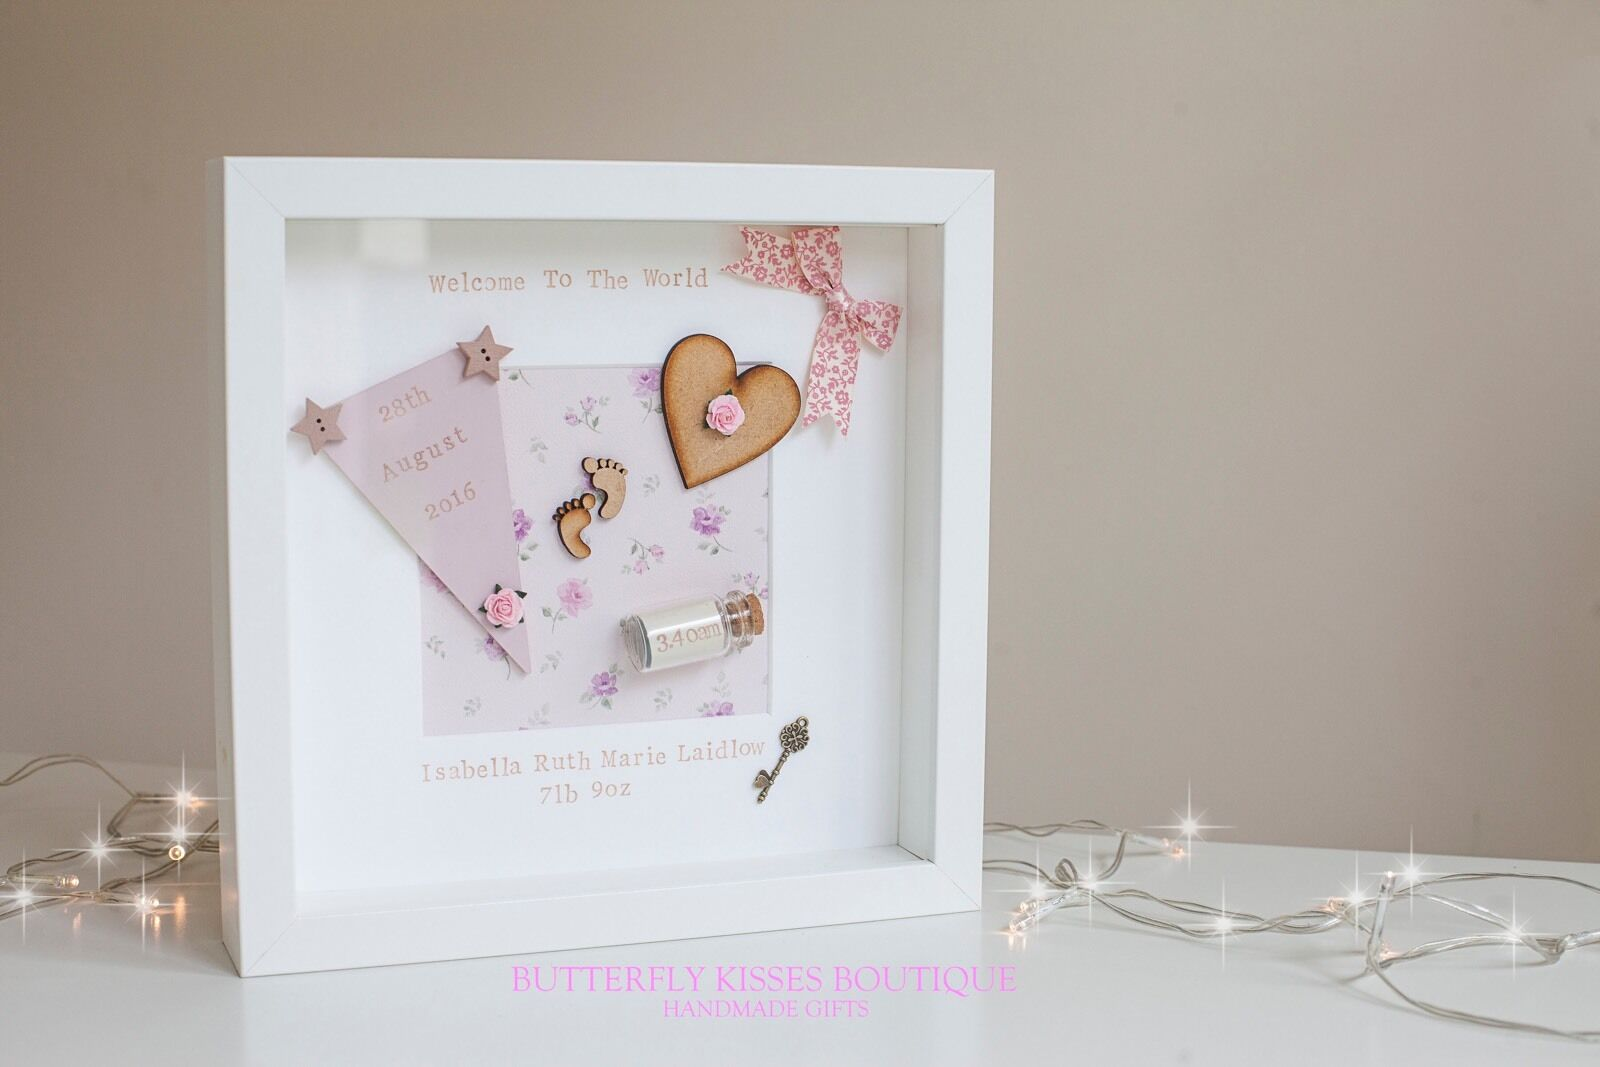 New Home Personalised Gifts Ireland